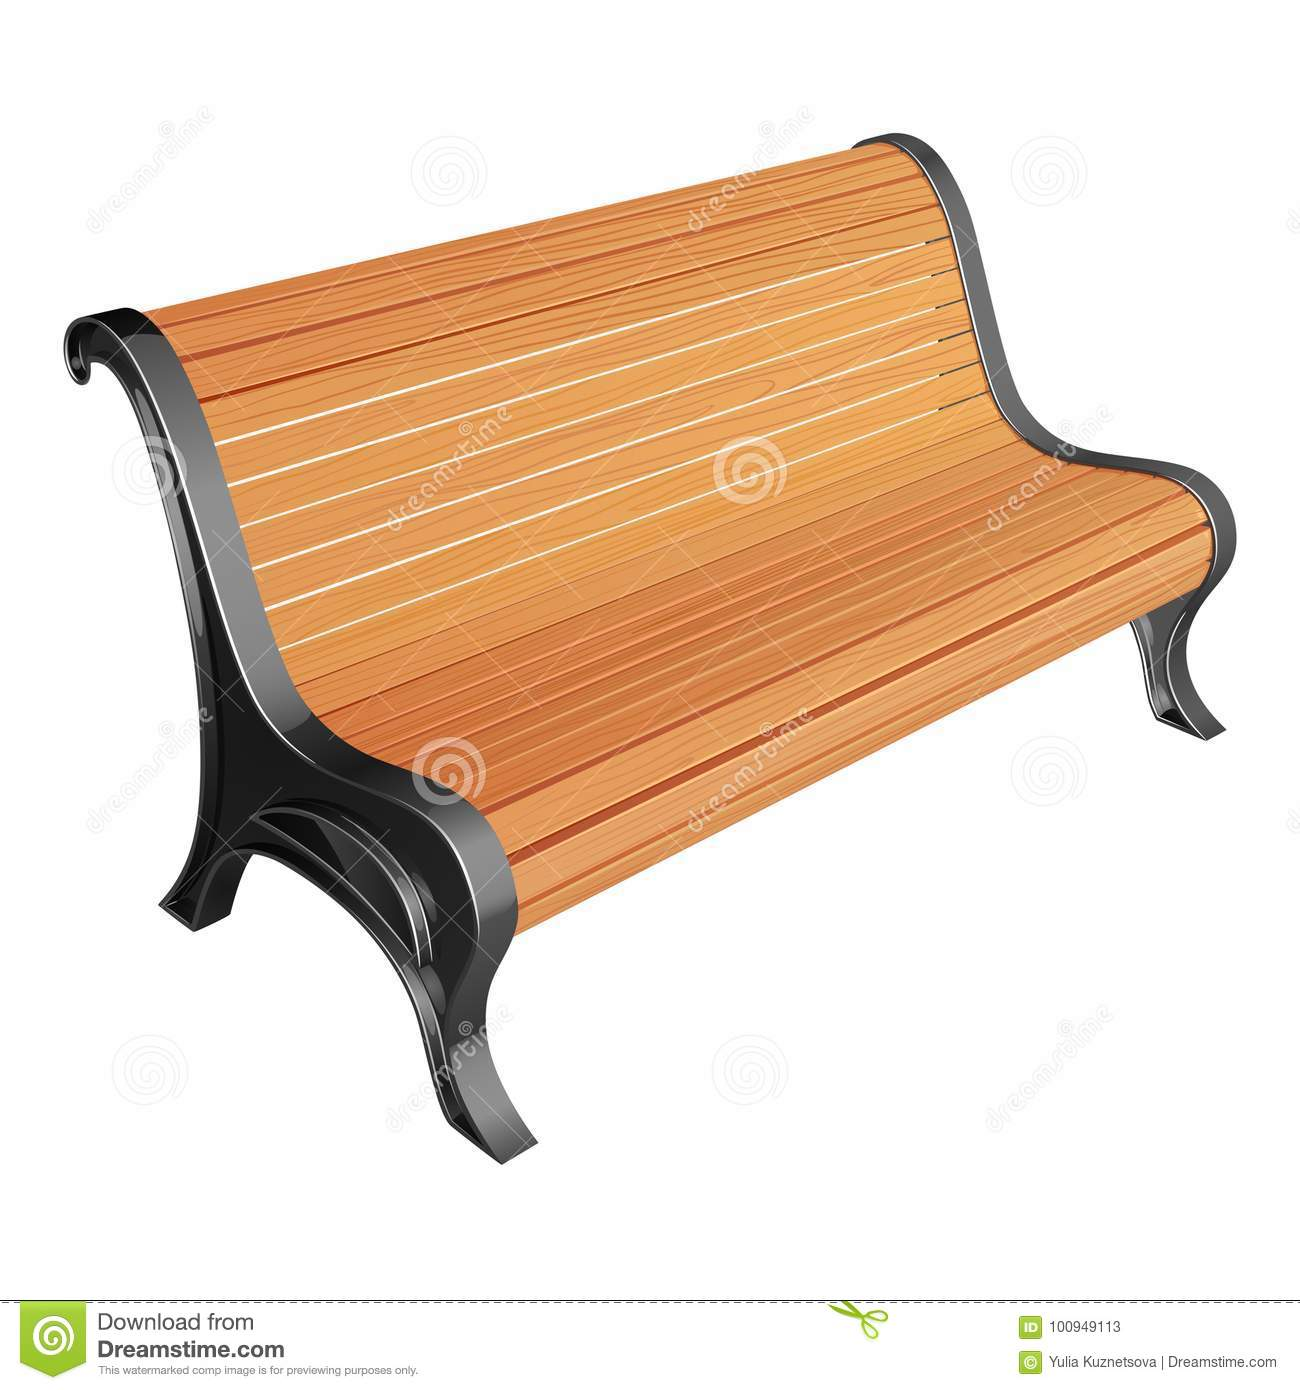 Wooden Park Bench Of Unpainted Racks On Metal Supports With A